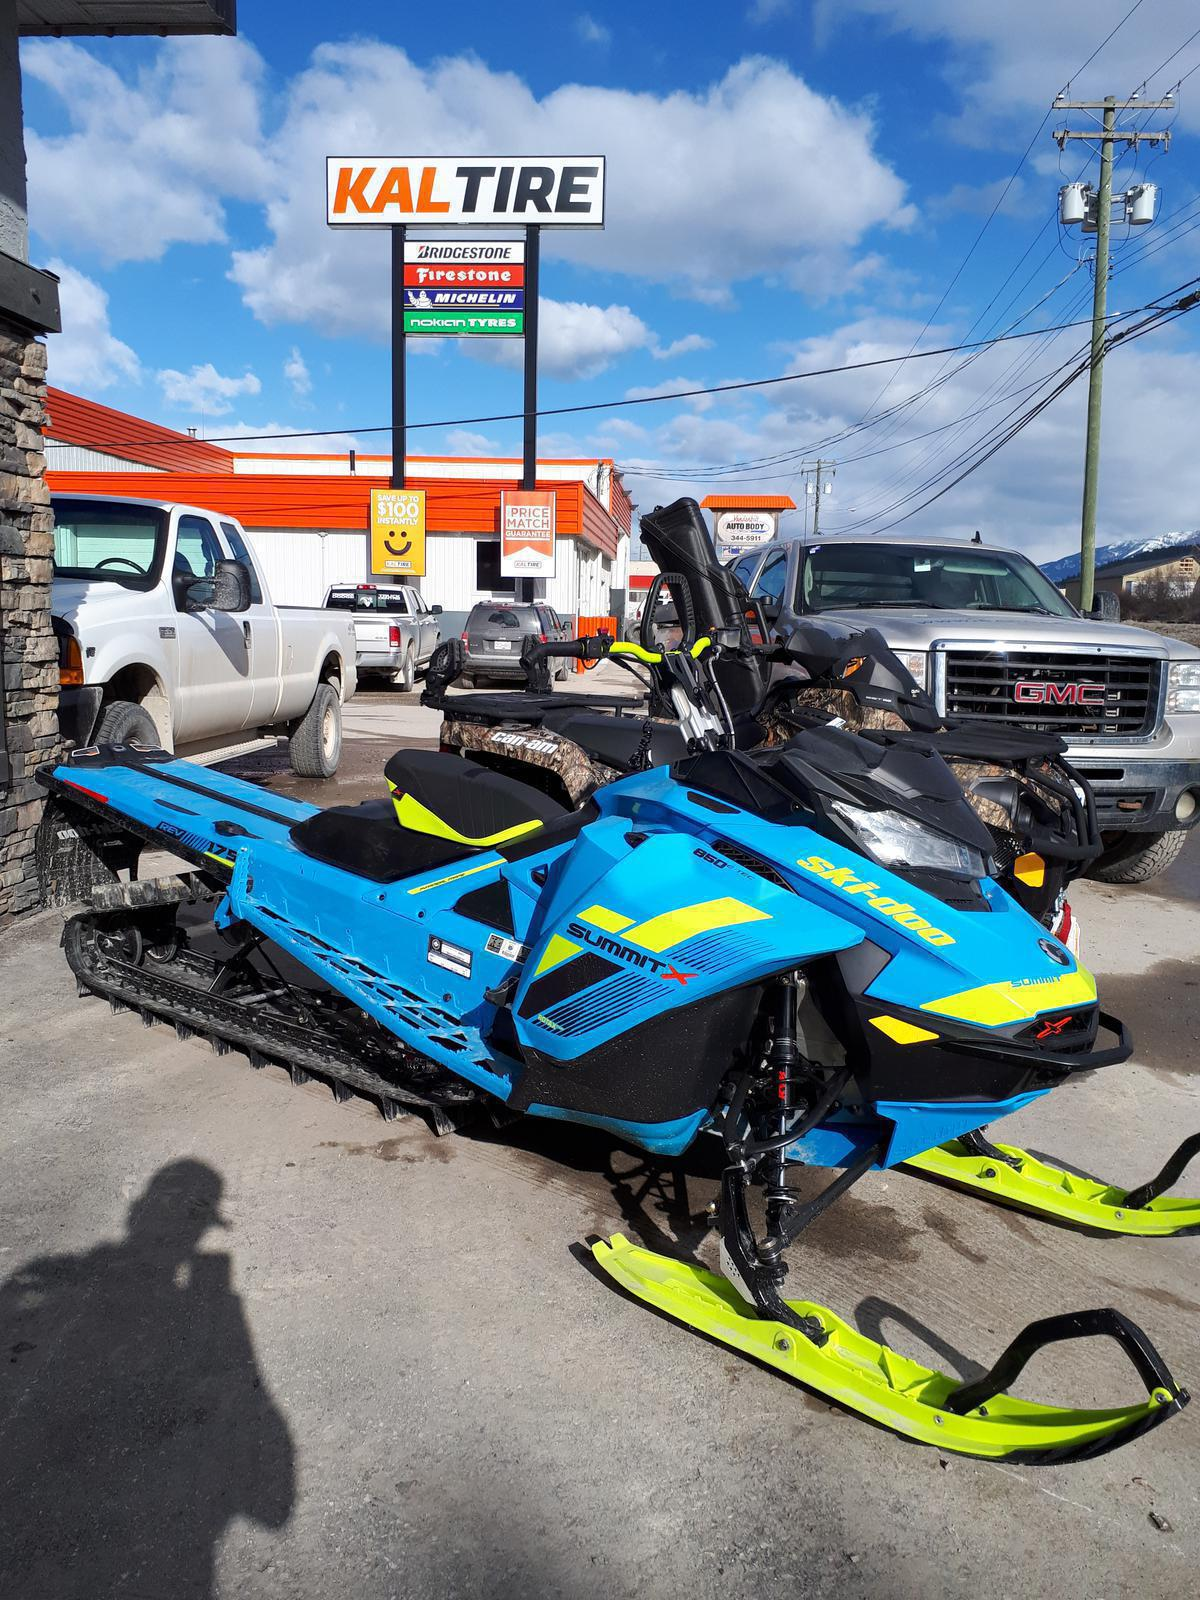 2018 Ski Doo Summit X 850 175